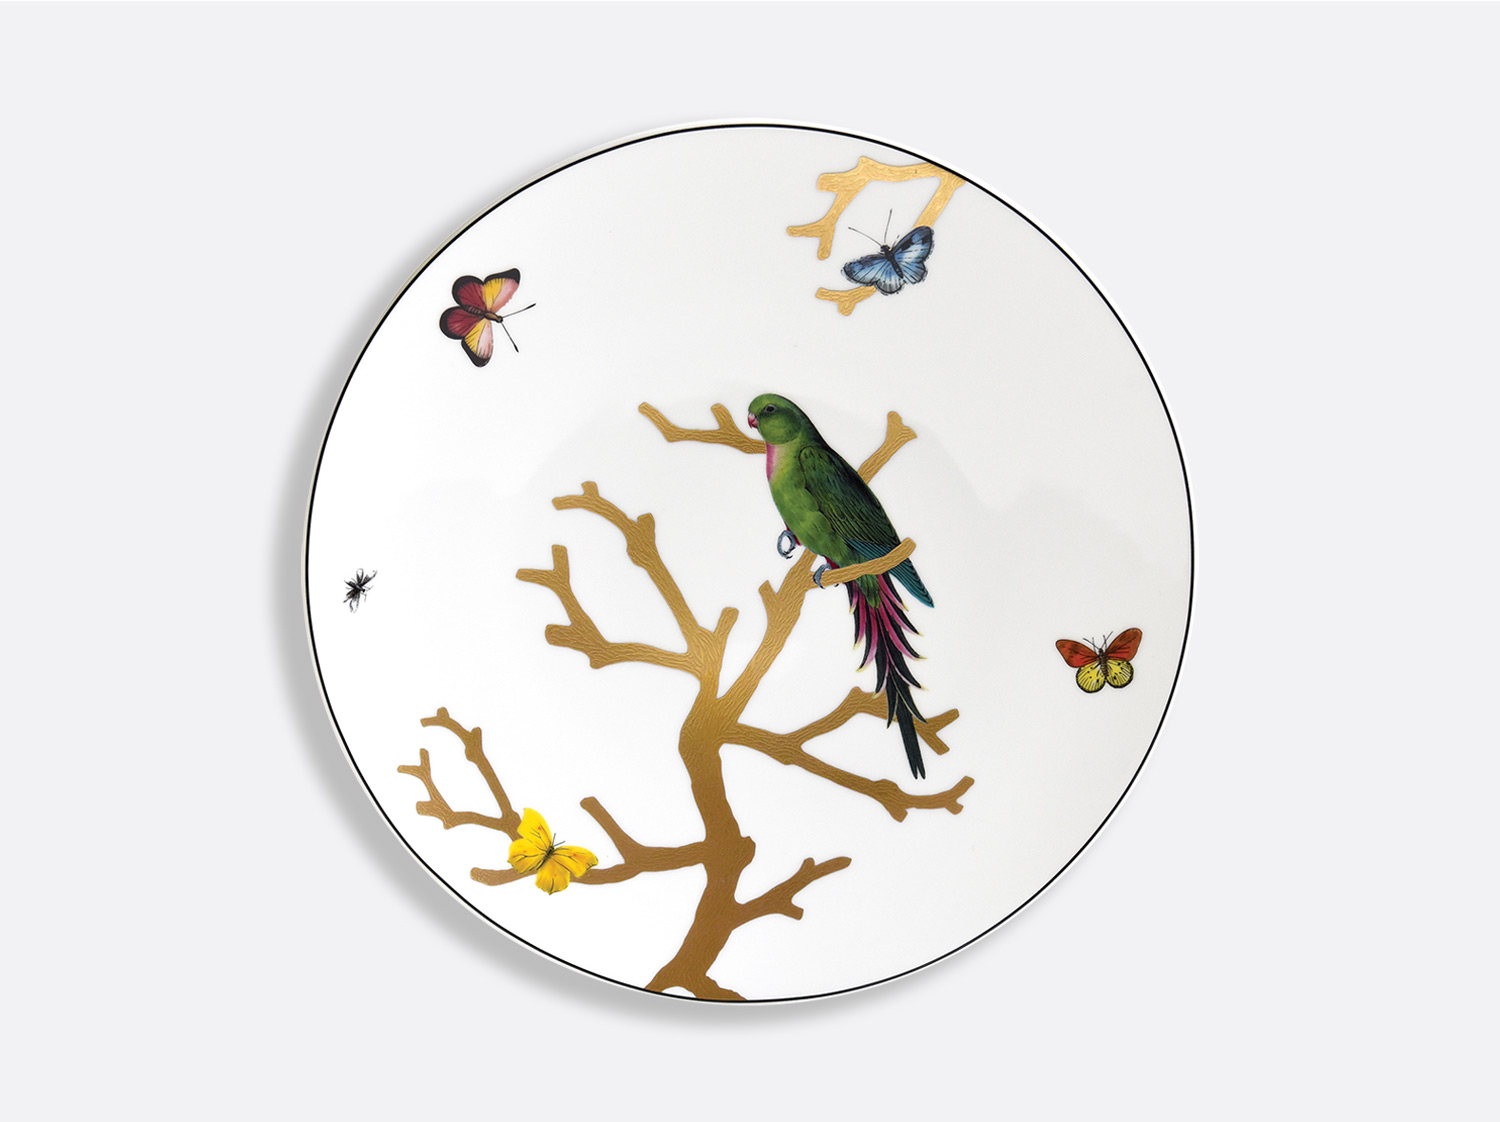 China Dinner plate 26 cm of the collection Aux Oiseaux Perruche vert | Bernardaud